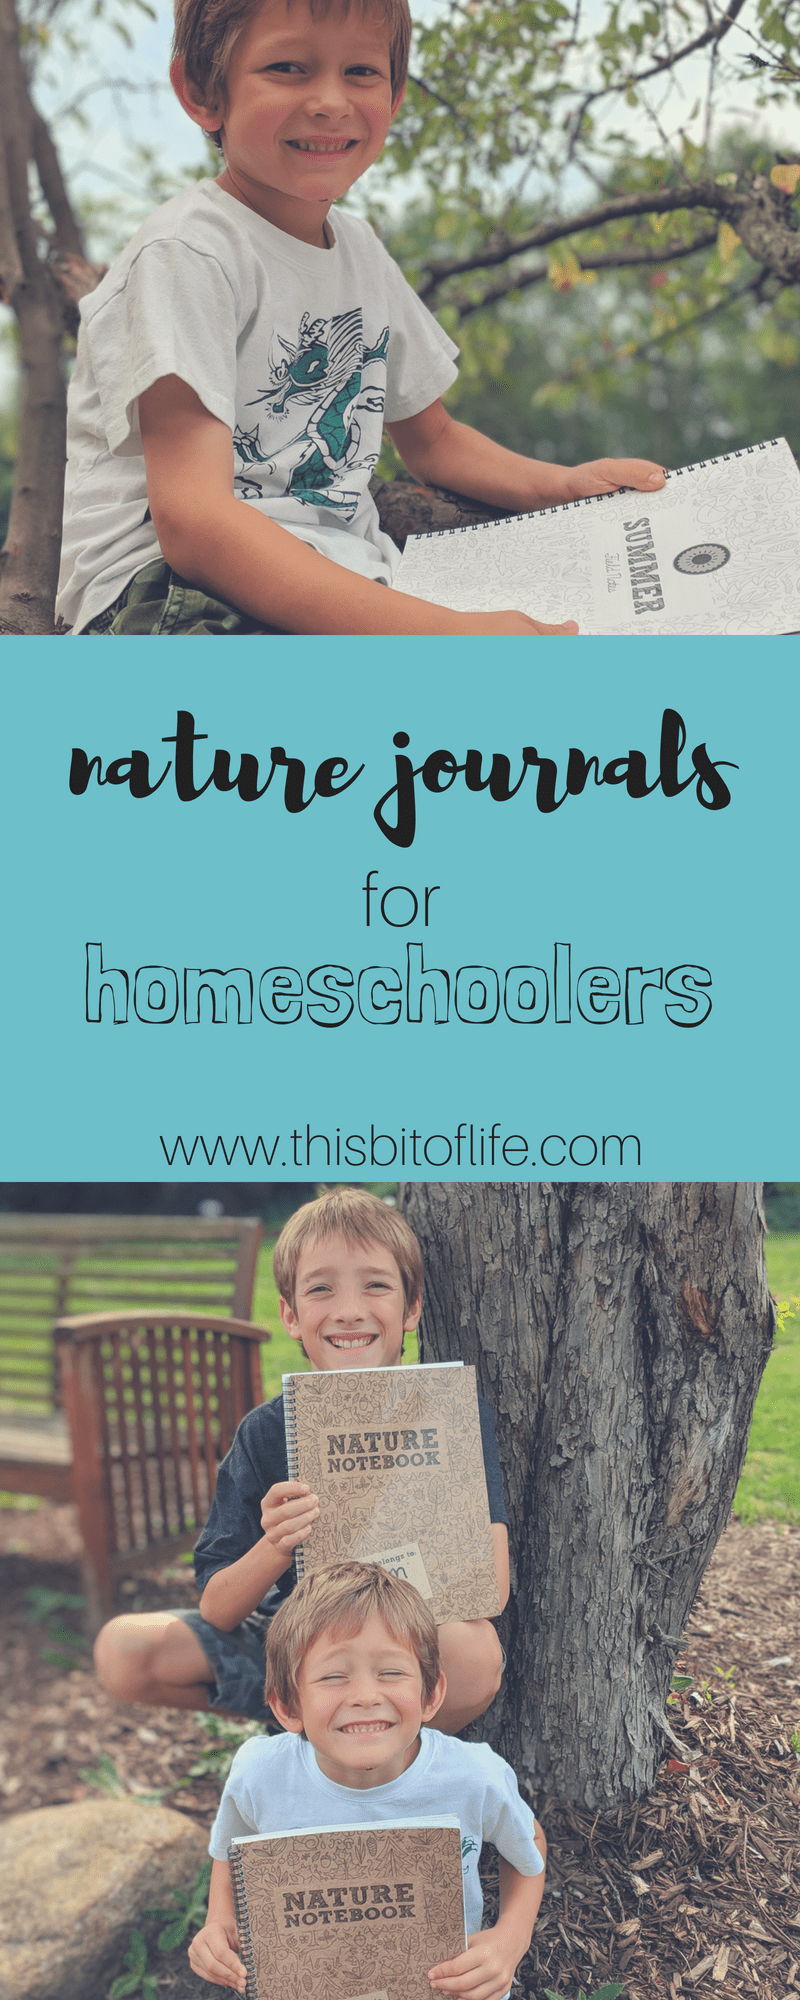 Nature Journals for Homeschoolers. We have loved adding nature journaling into our homeschool days! Being out in nature and adding in these nature notebooks has changed the way we incorporate nature studies into our homeschool. #naturejournaling #naturenotebooks #thegoodandthebeautiful #charlottemason #homeschool